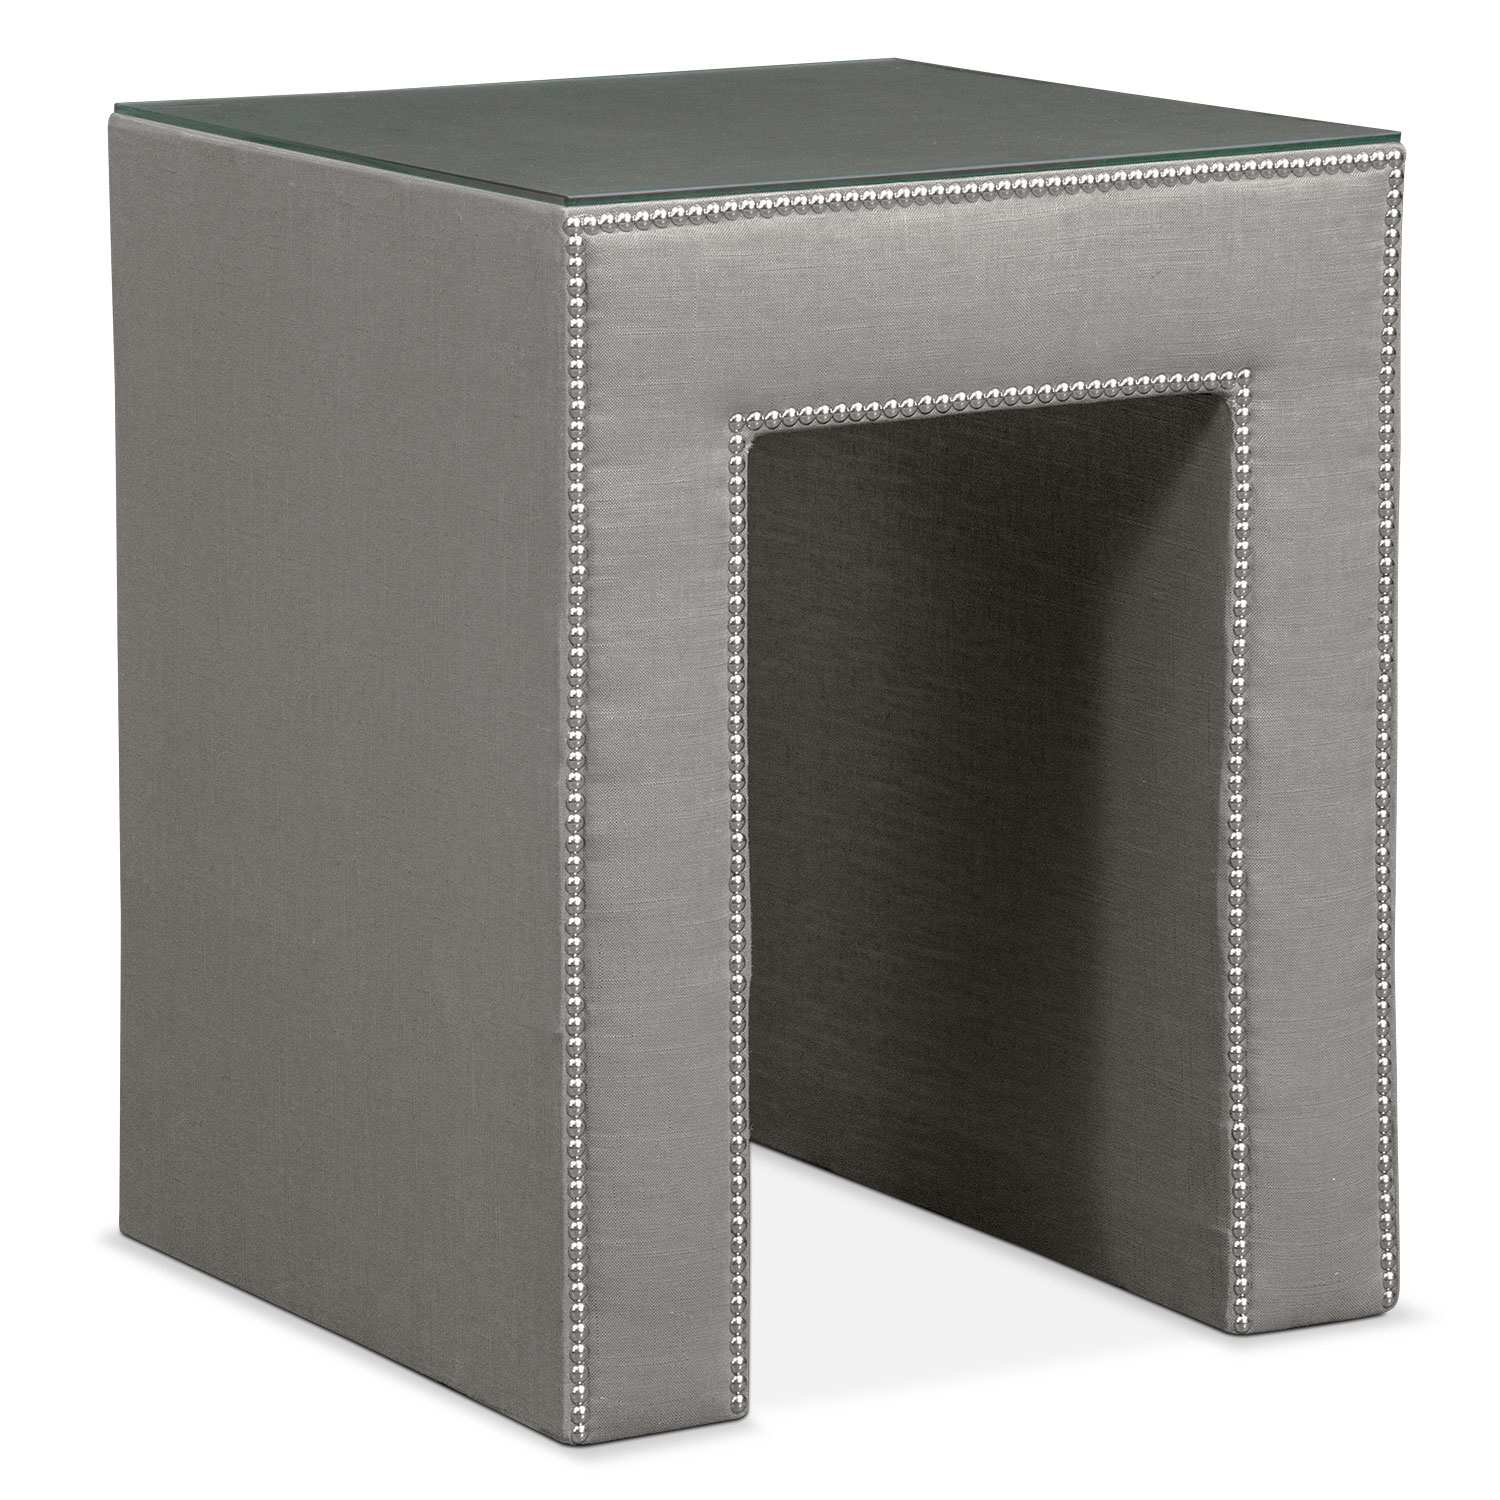 Bedroom Furniture - Nyla Nightstand - Granite